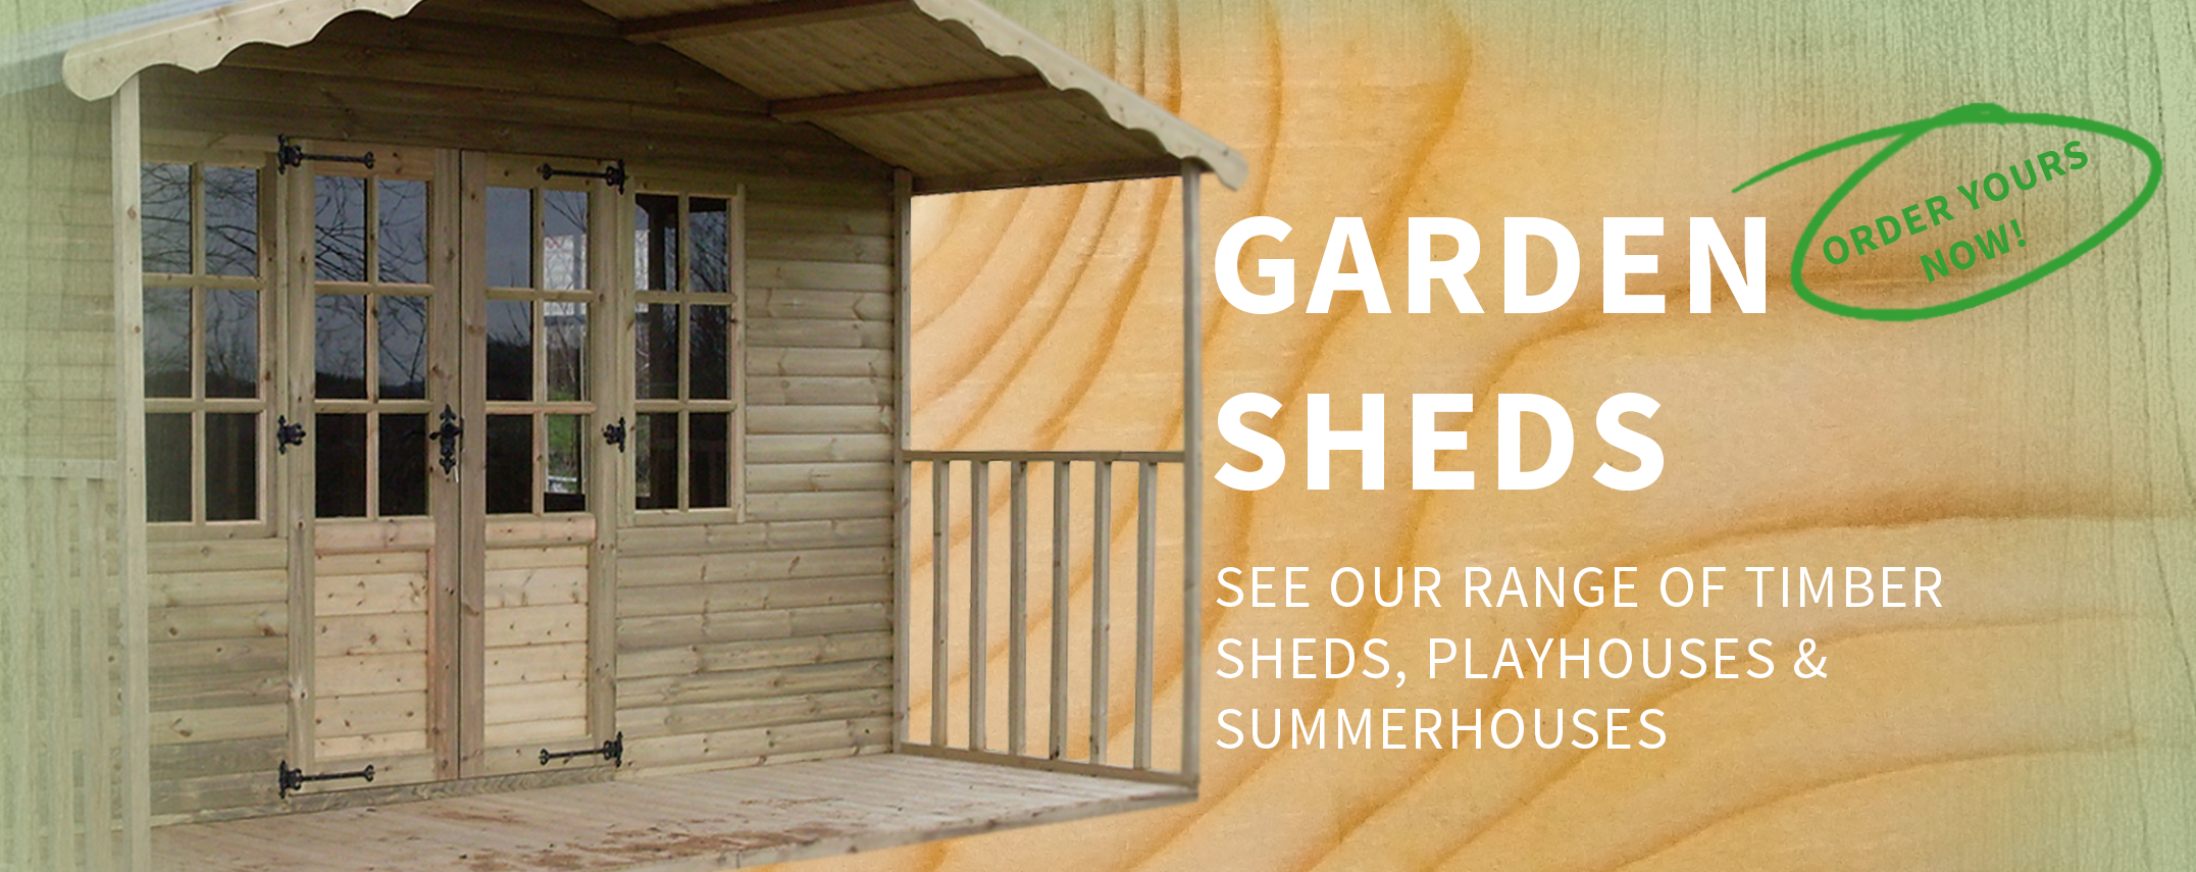 see our large range of garden sheds north west playhouses and summerhouses wooden sheds